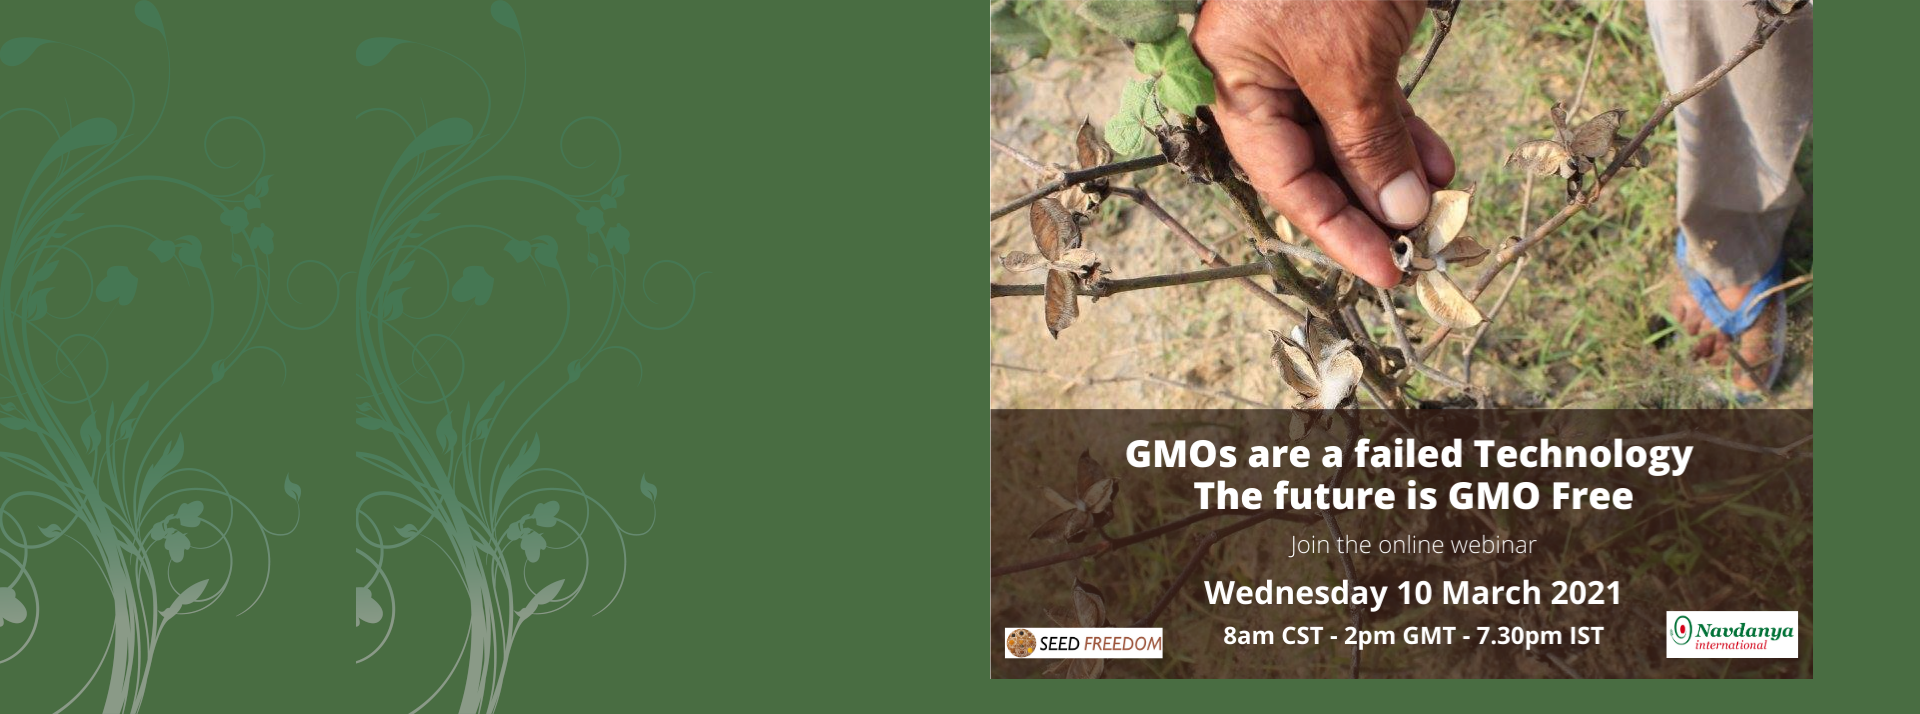 GMOs are a failed Technology. The future is GMO Free